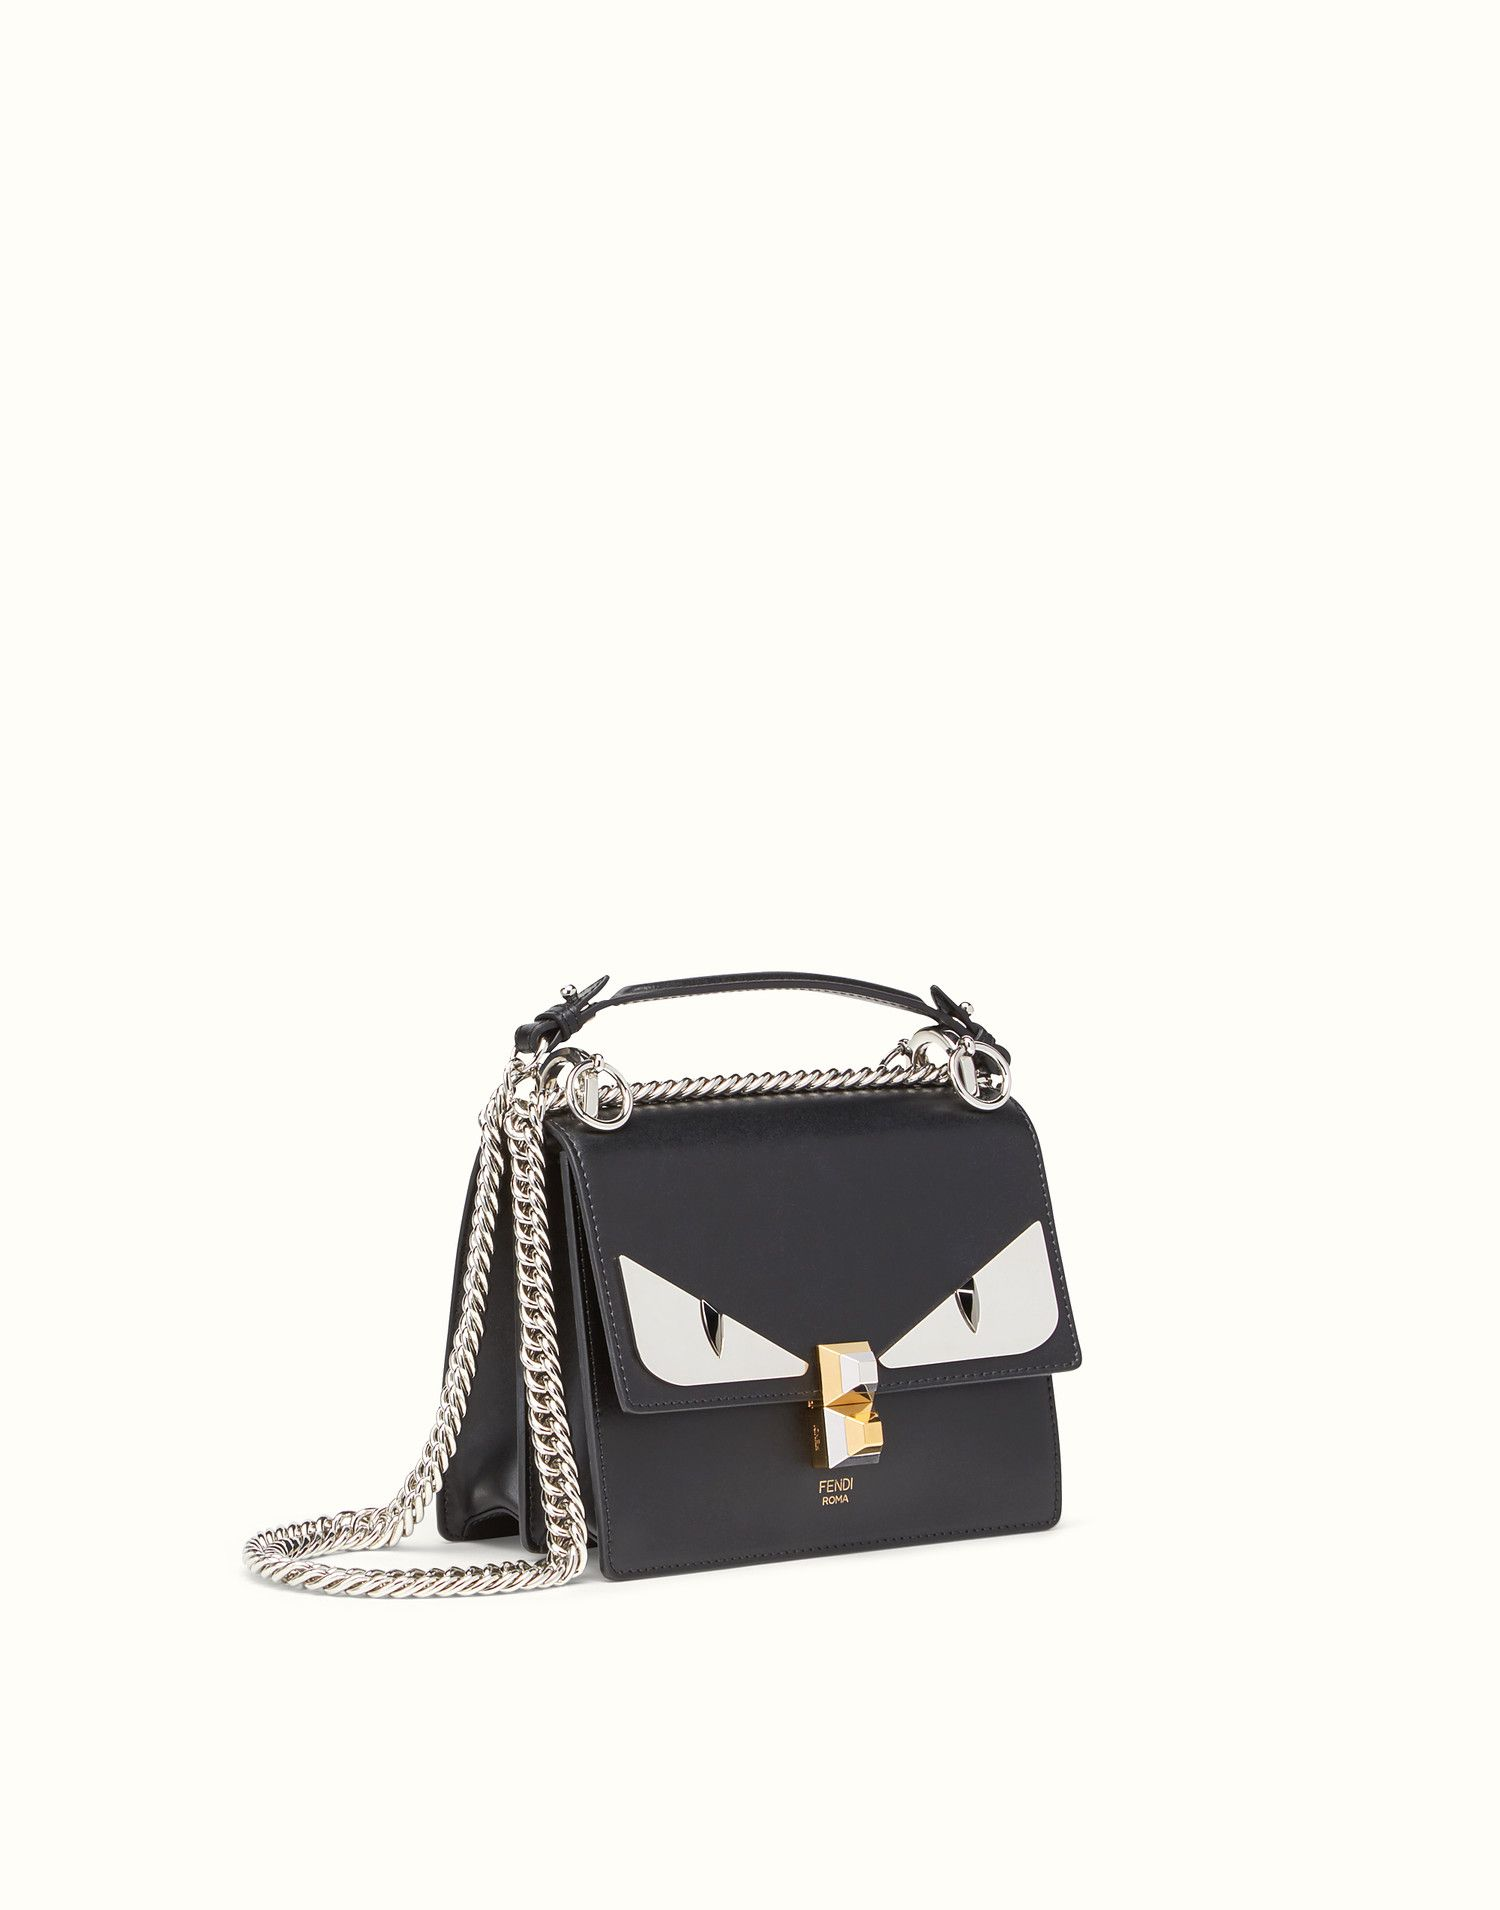 d60a865daaab FENDI KAN I SMALL - Bag Bugs black leather mini bag